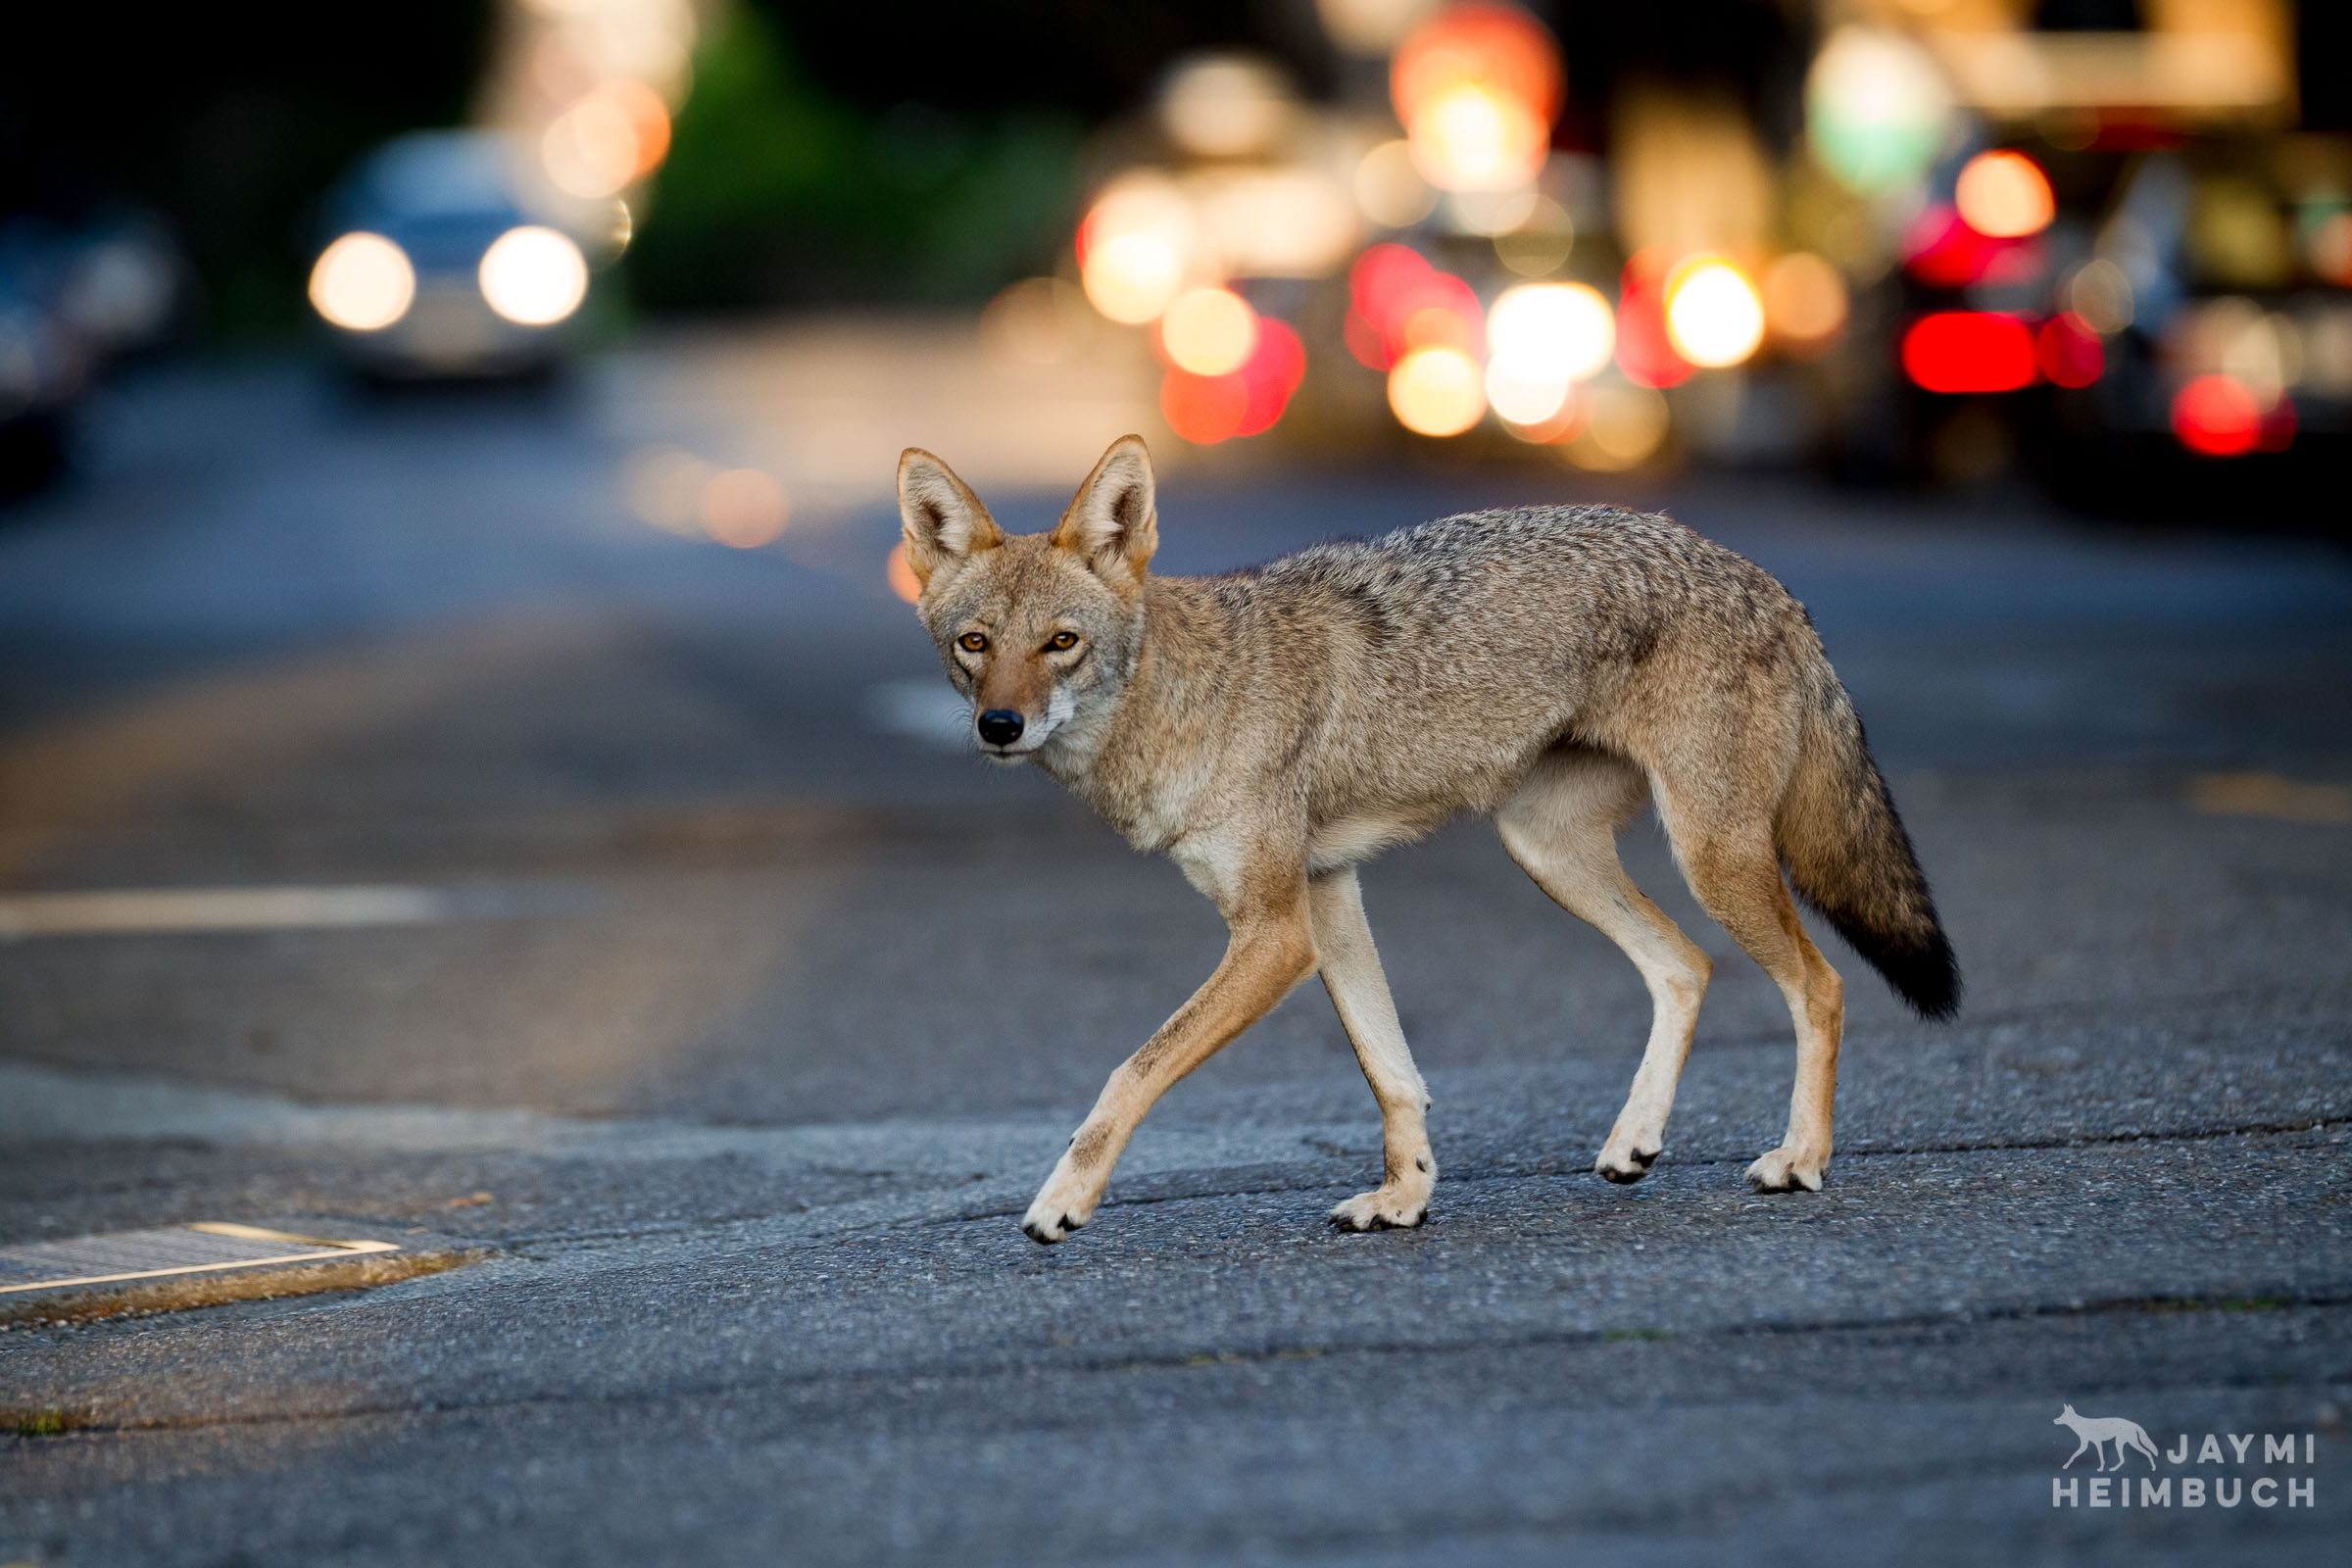 Urban coyote on city street, san francisco, california